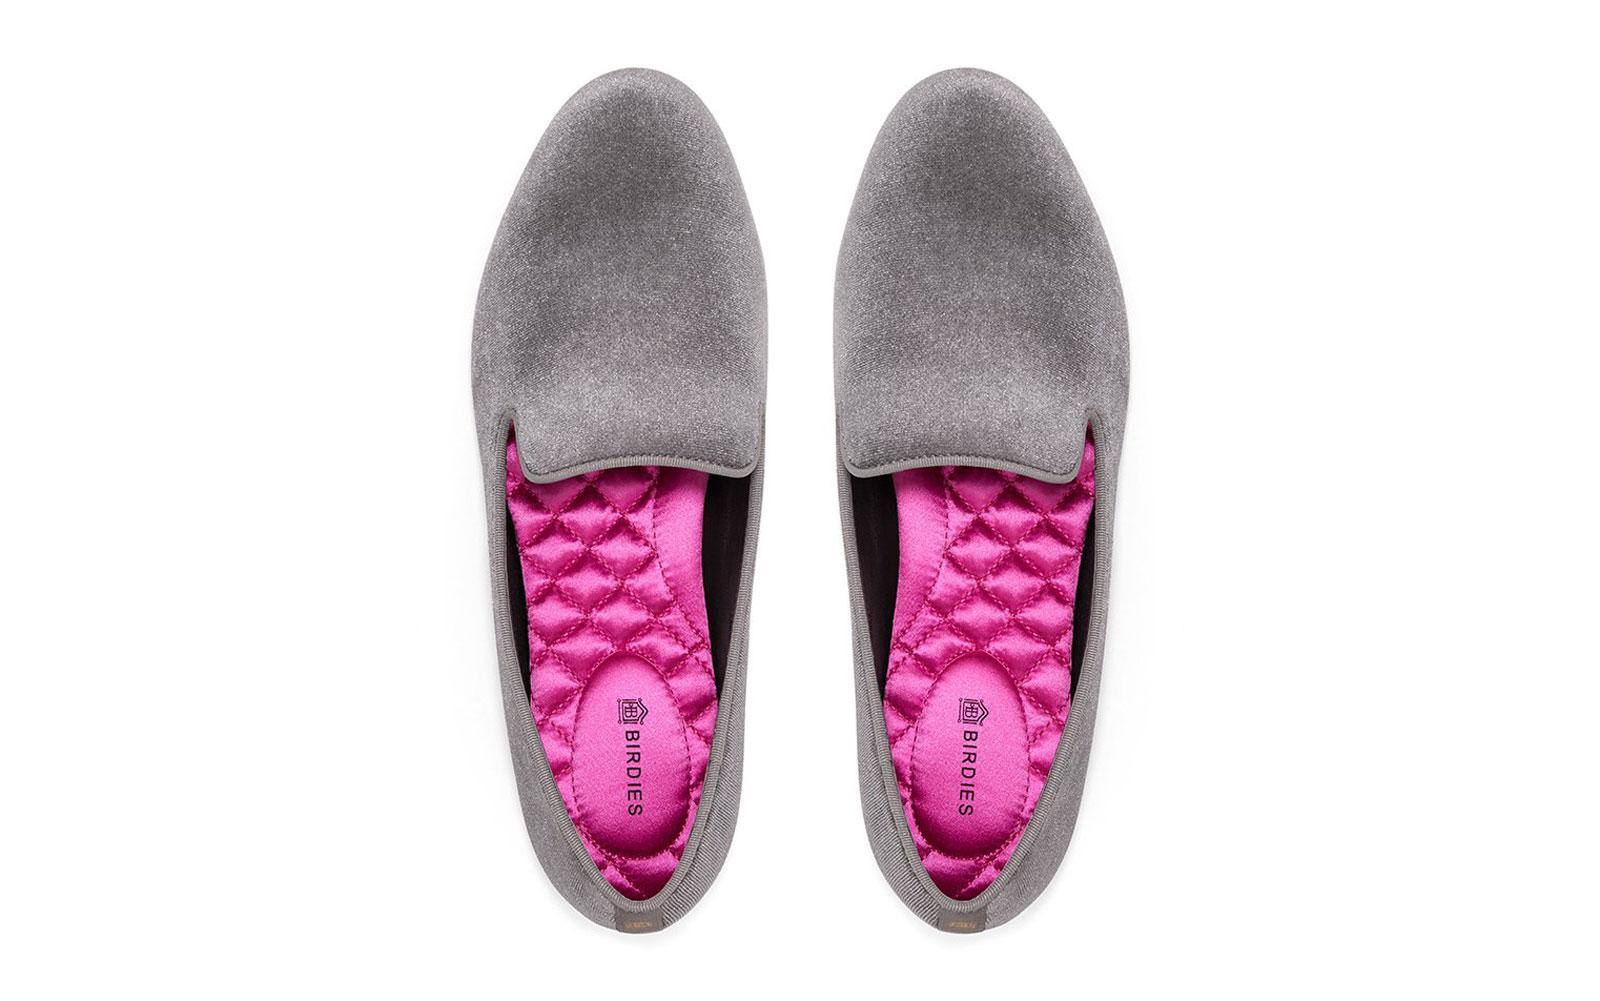 Grey velvet slippers